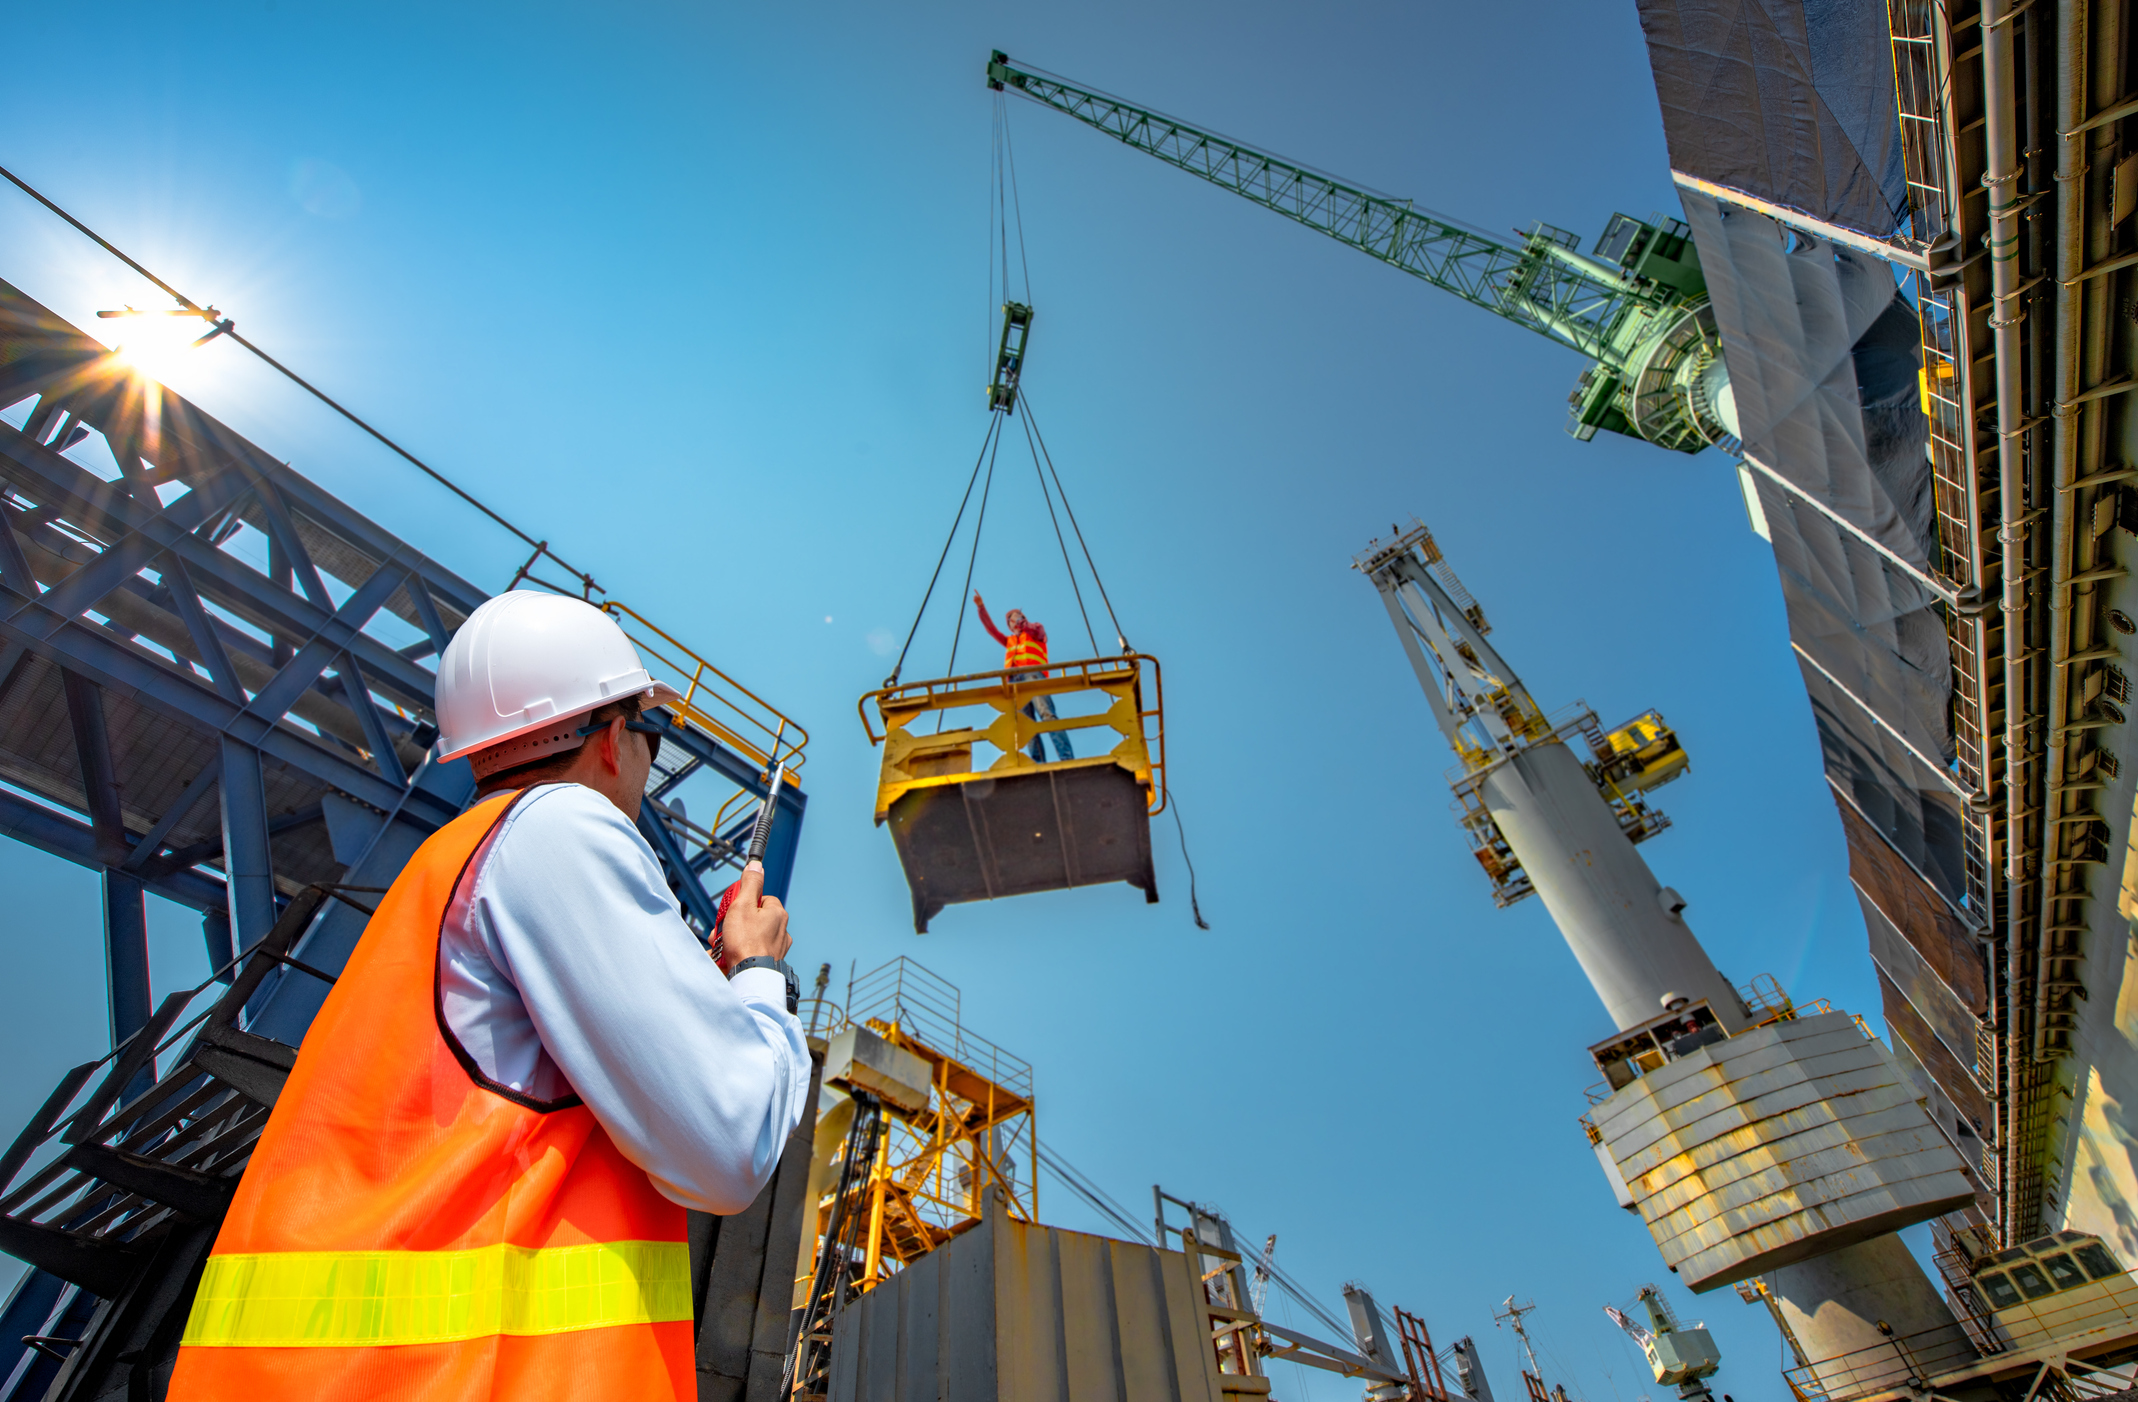 World Safety Body Welcomes Deeper Focus on Building Safety IOSH